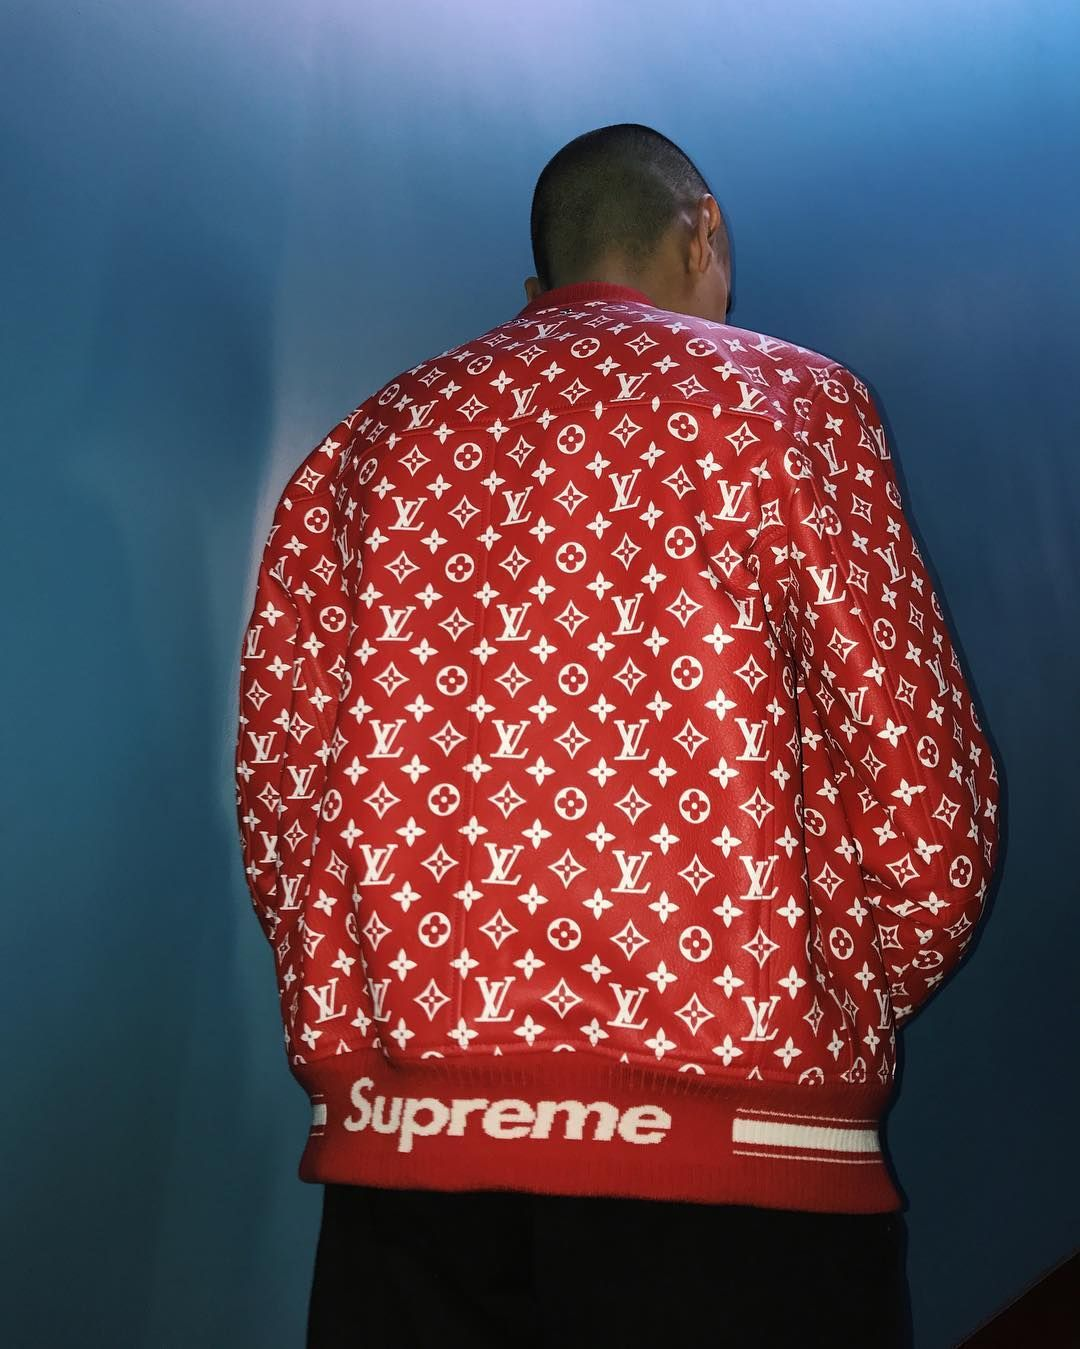 new arrival 77df5 dca82 Supreme x Louis Vuitton Is Real and Here s What You Need to Know (Update)    GQ